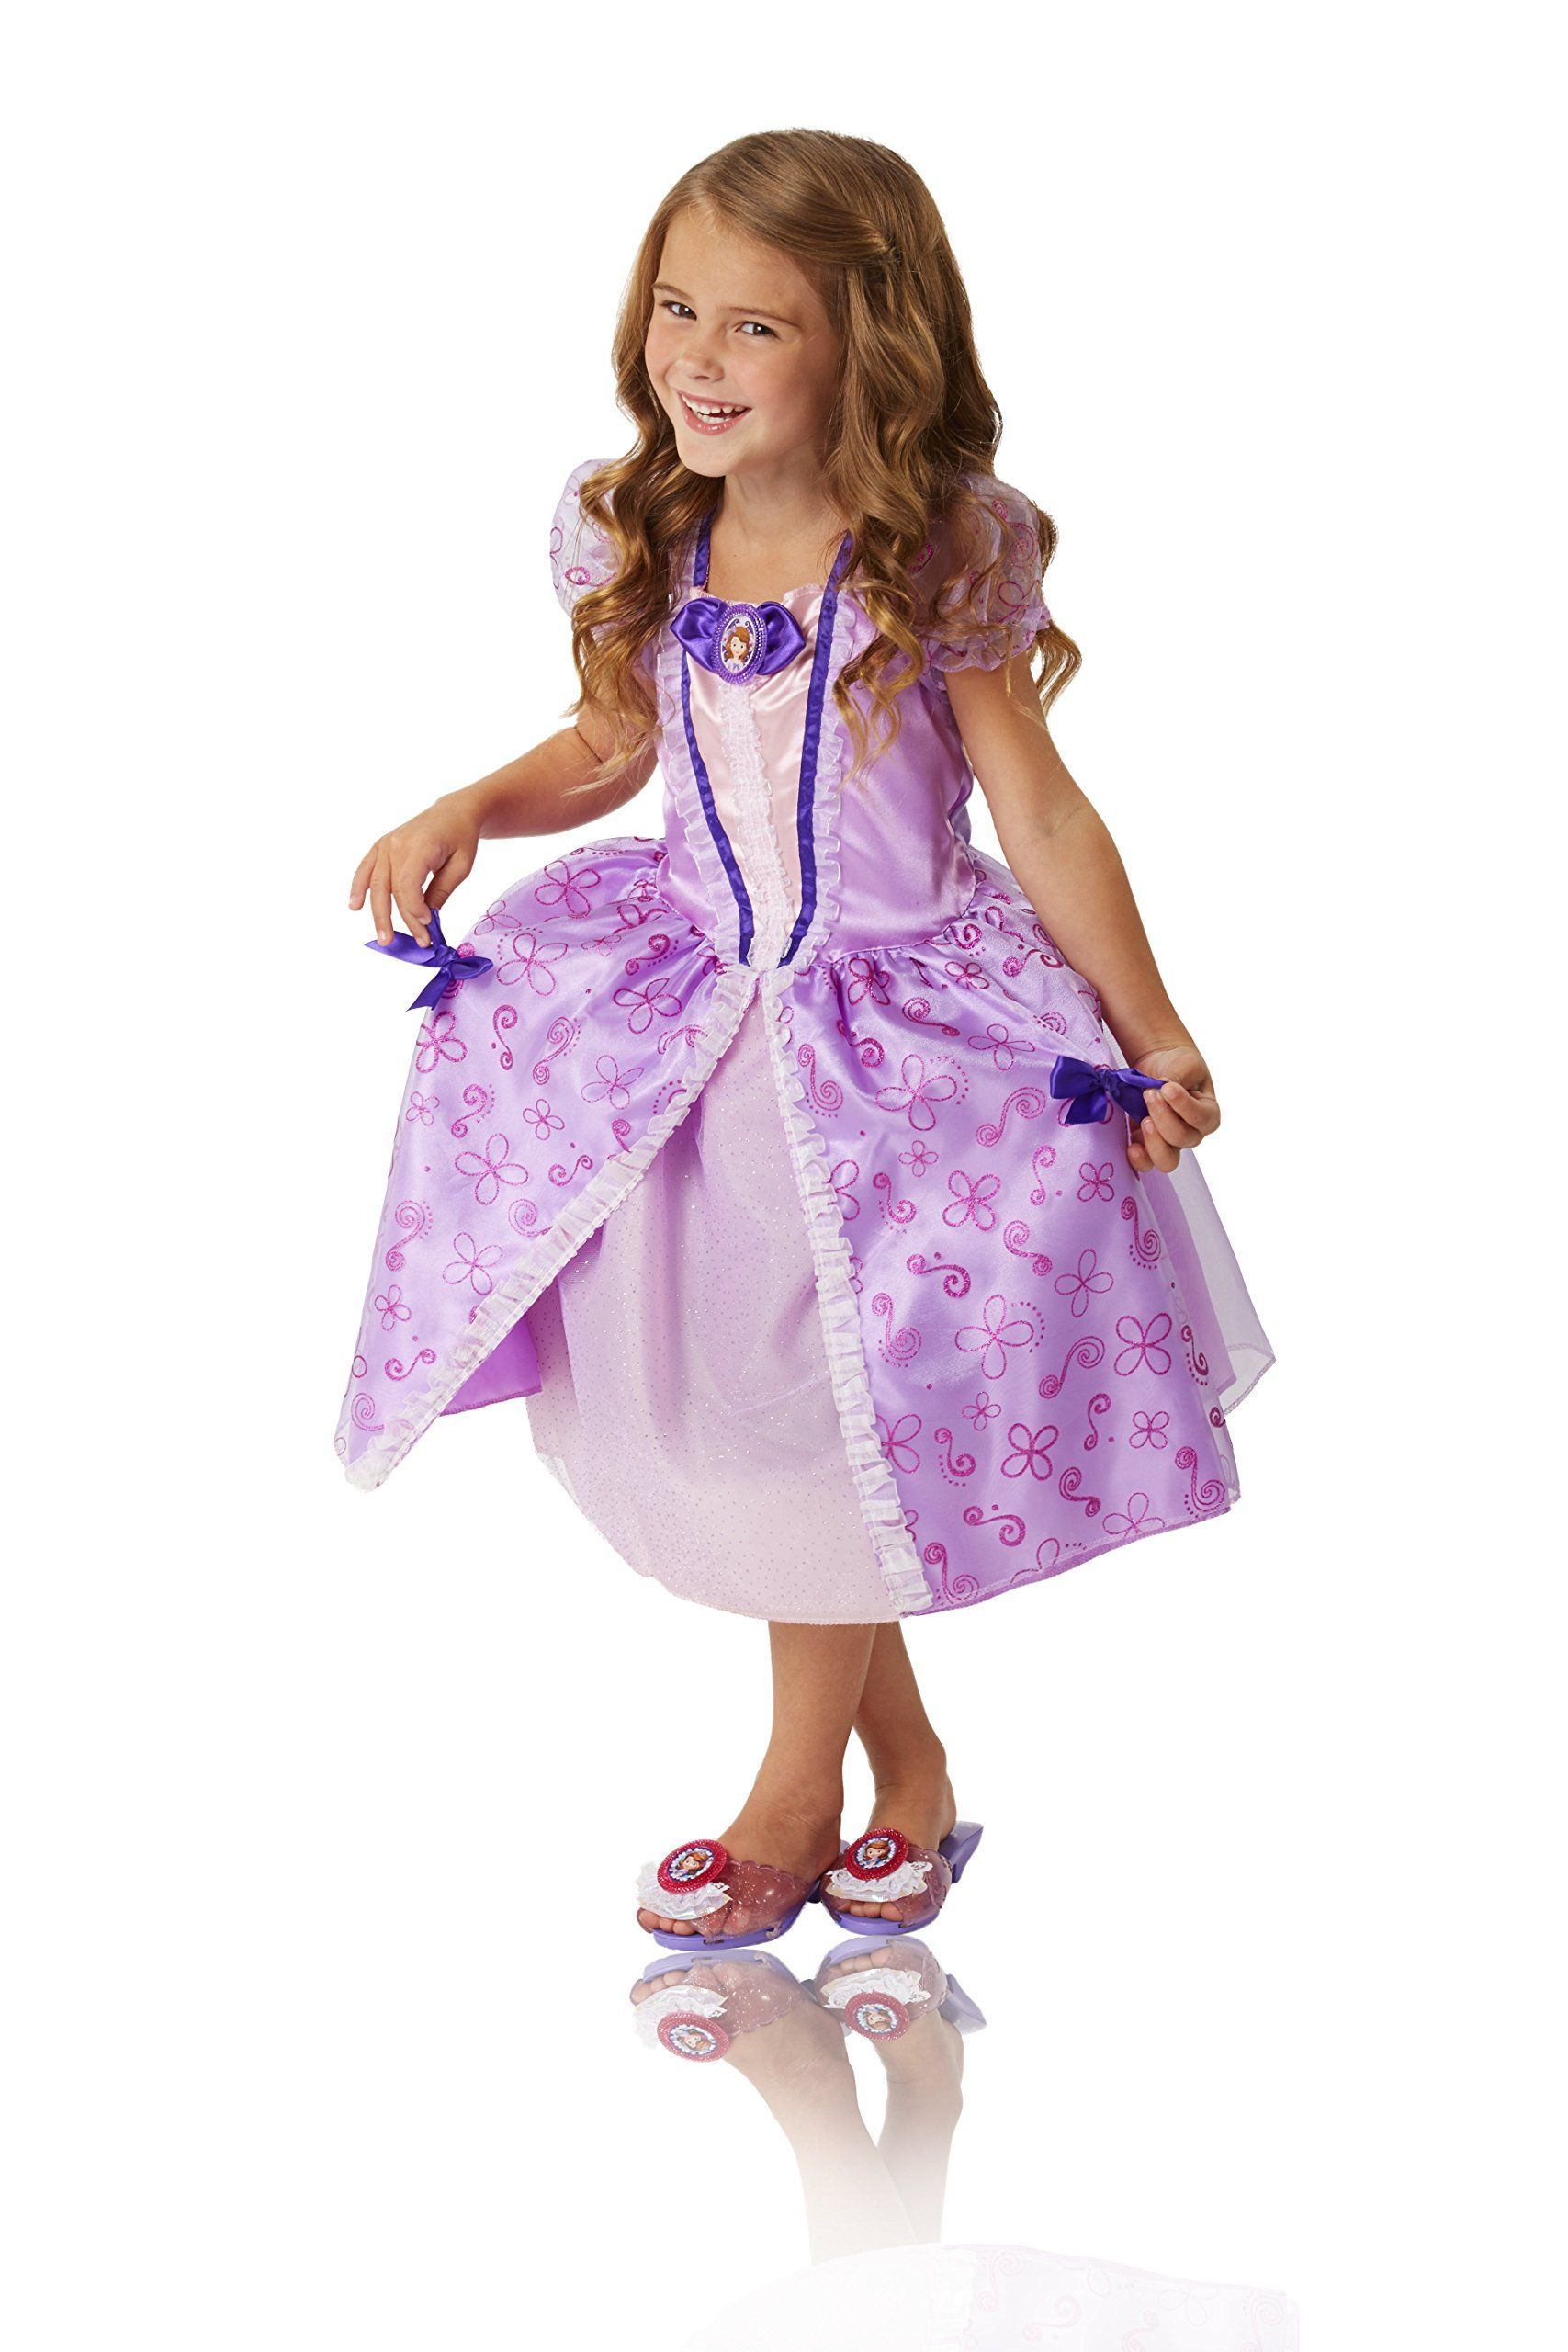 sofia the first royal curtsy dress - nan | kids christmas list 2015